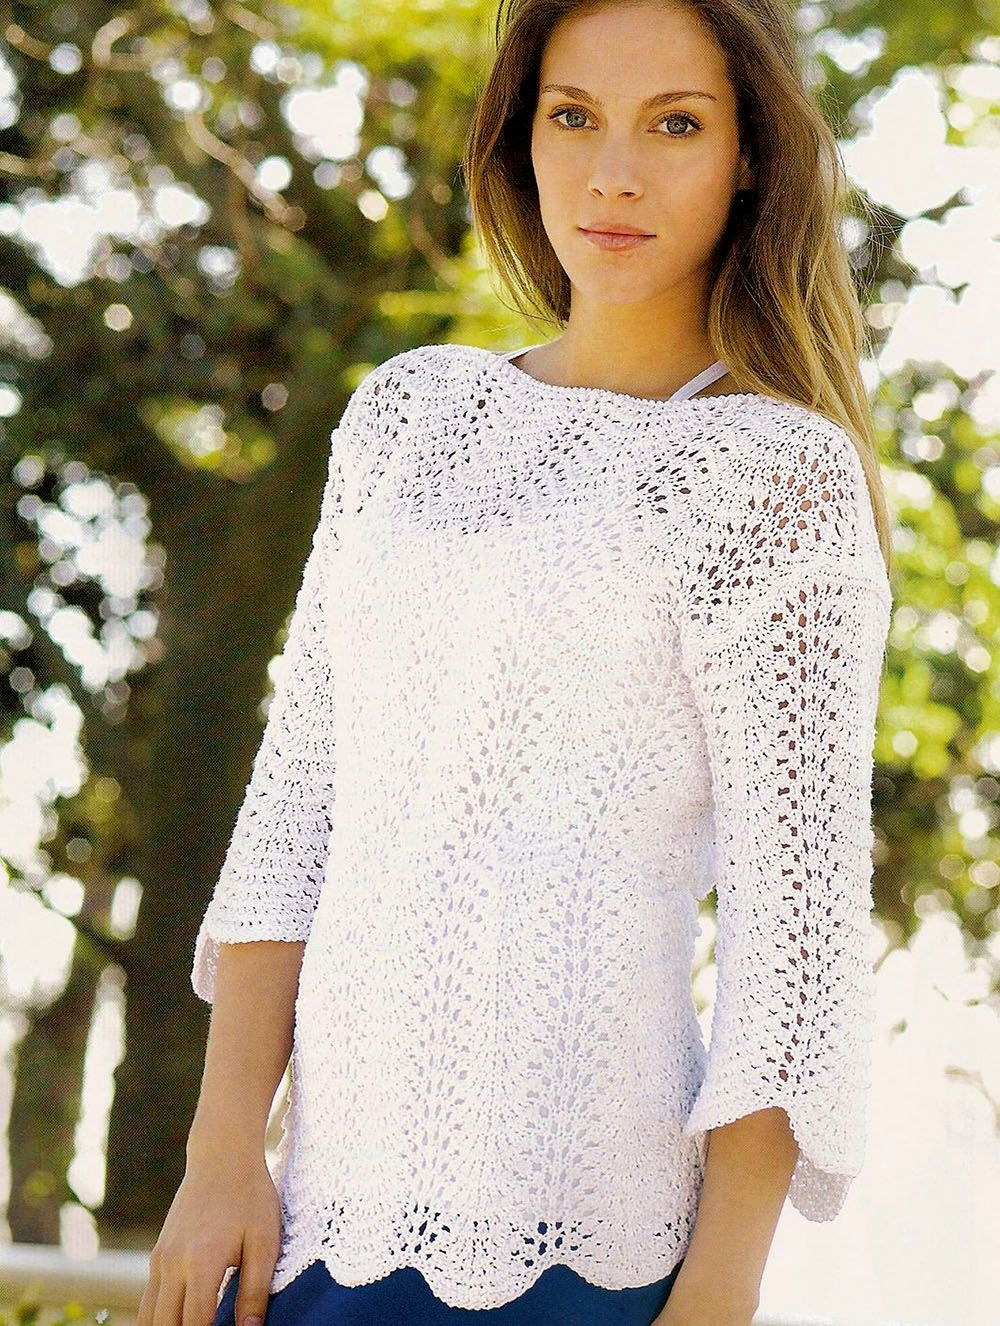 Pullover in Wavy Pattern | Sweaters 1 | Pinterest | Ondulado, Para ...